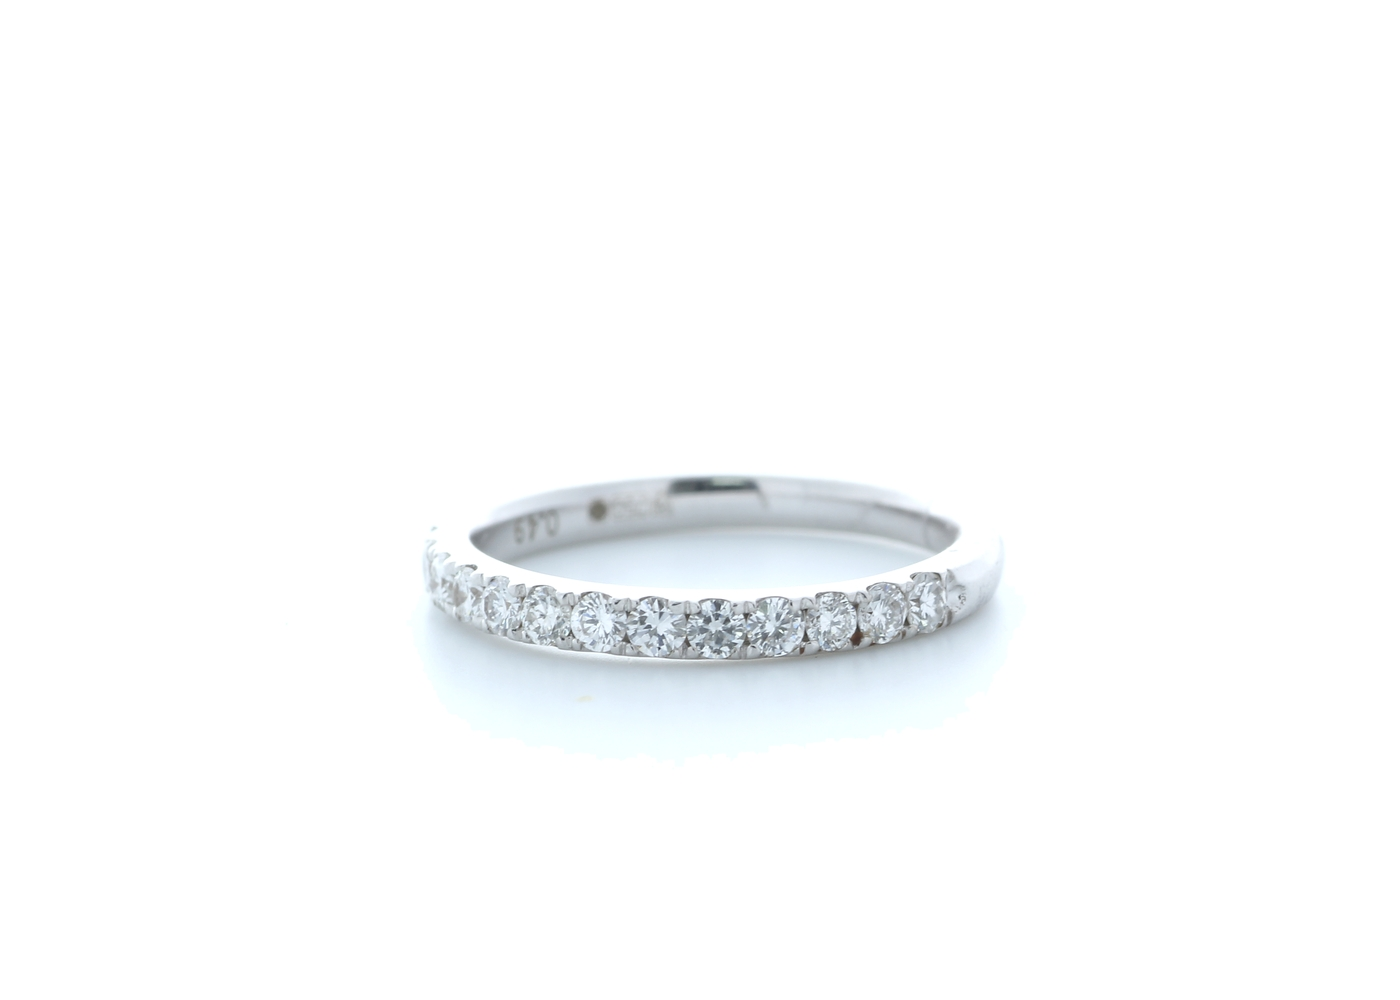 18ct White Gold Claw Set Semi Eternity Diamond Ring 0.44 Carats - Image 2 of 4